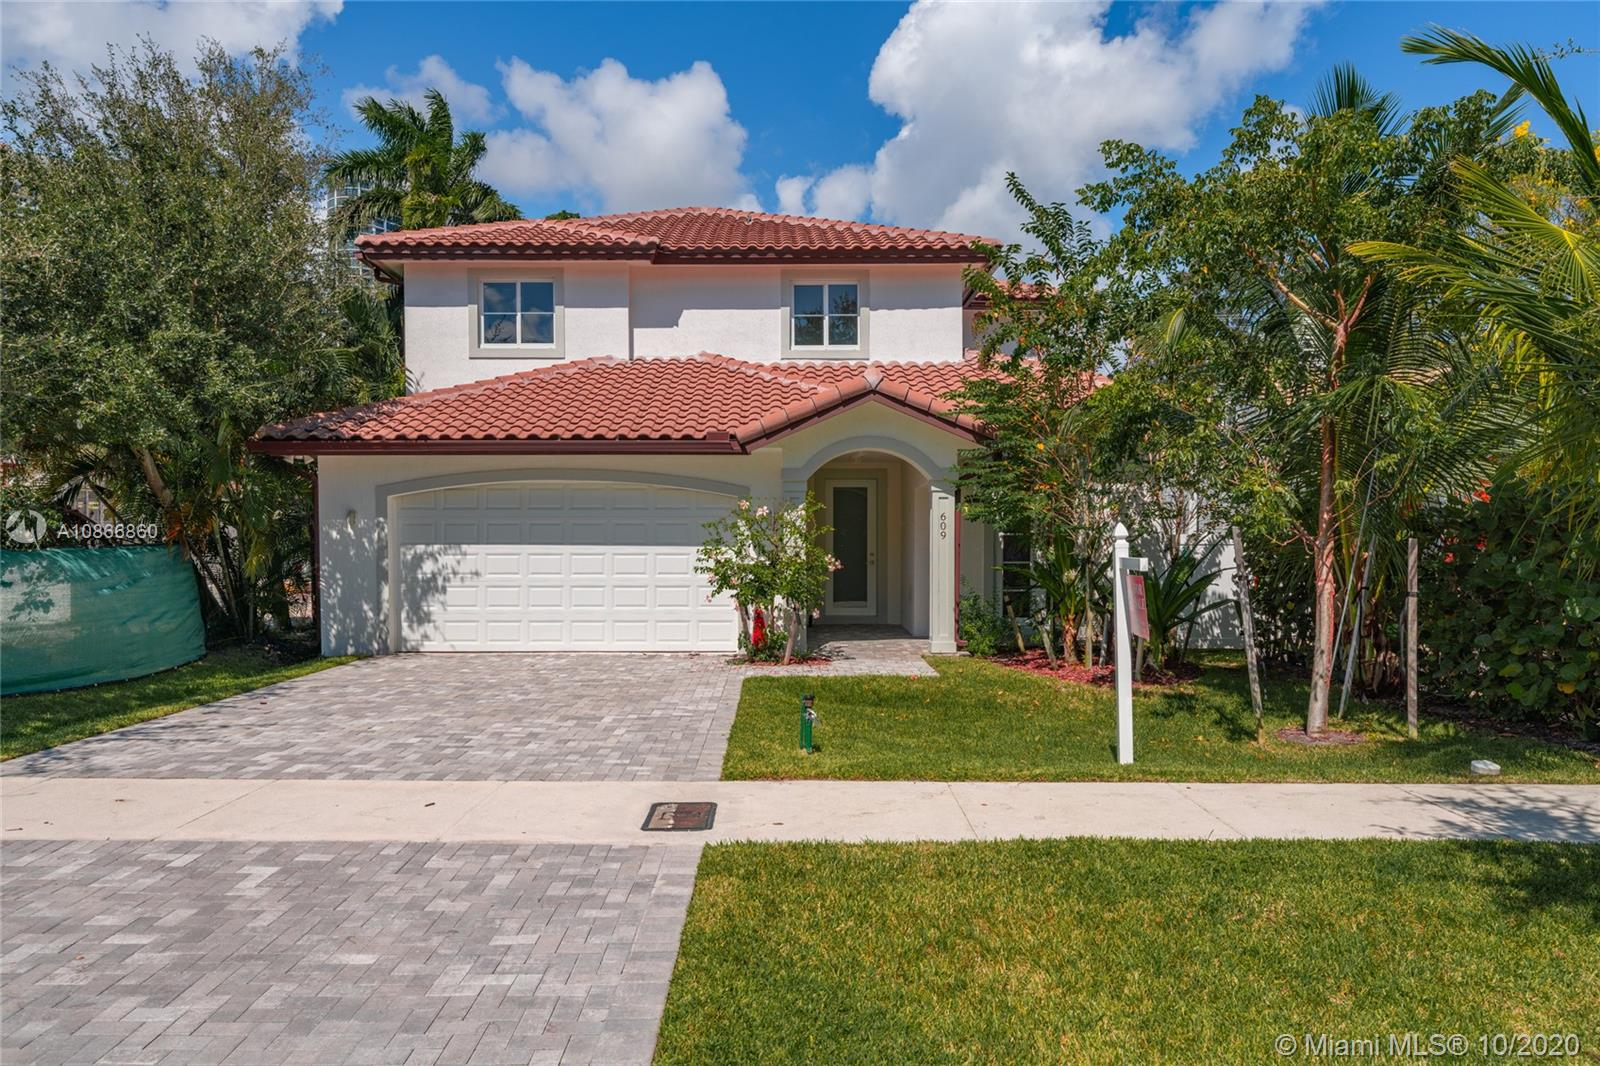 STUNNING BRAND NEW 2020 CUSTOM HOME WITH THE POOL IN RIO VISTA AREA!!**5BED/5BATH**4,569 SQFT-Total Main Residence**LOCATED in one of the BEST neighborhoods in FORT LAUDERDALE**TRANSITIONAL-MODERN architecture outside and modern finishes inside**EXCELLENT combination of porcelain tile and wide plank wood flooring**All Rooms are LARGE**MASTER has a big patio overlooking the pool area**CONTEMPORARY finishes include EURO STYLE cabinetry w/quartz counters*** This HOUSE is a MUST SEE!**PRICED TO SELL**DO NOT MISS YOUR CHANCE TO OWN THIS BEAUTIFUL CUSTOM HOME IN RIO VISTA AREA!!